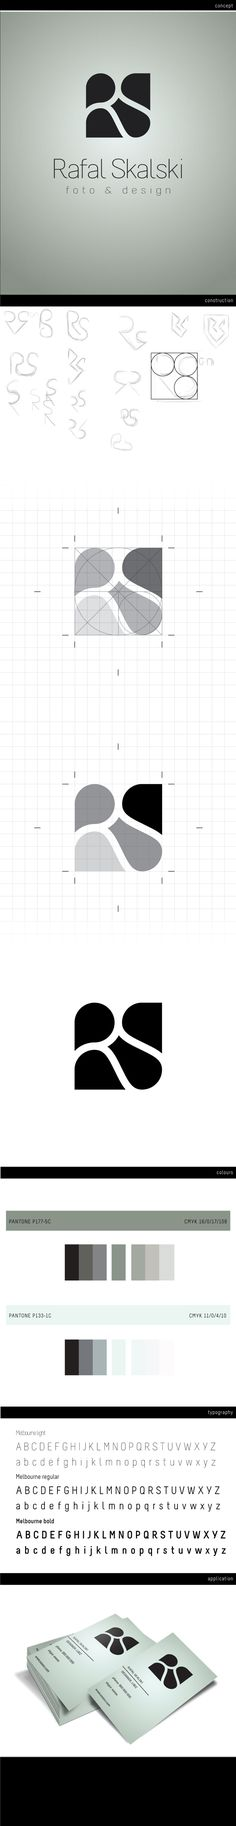 I absolutely love this logo. The negative space and curves make it look very elegant and sophisticated.